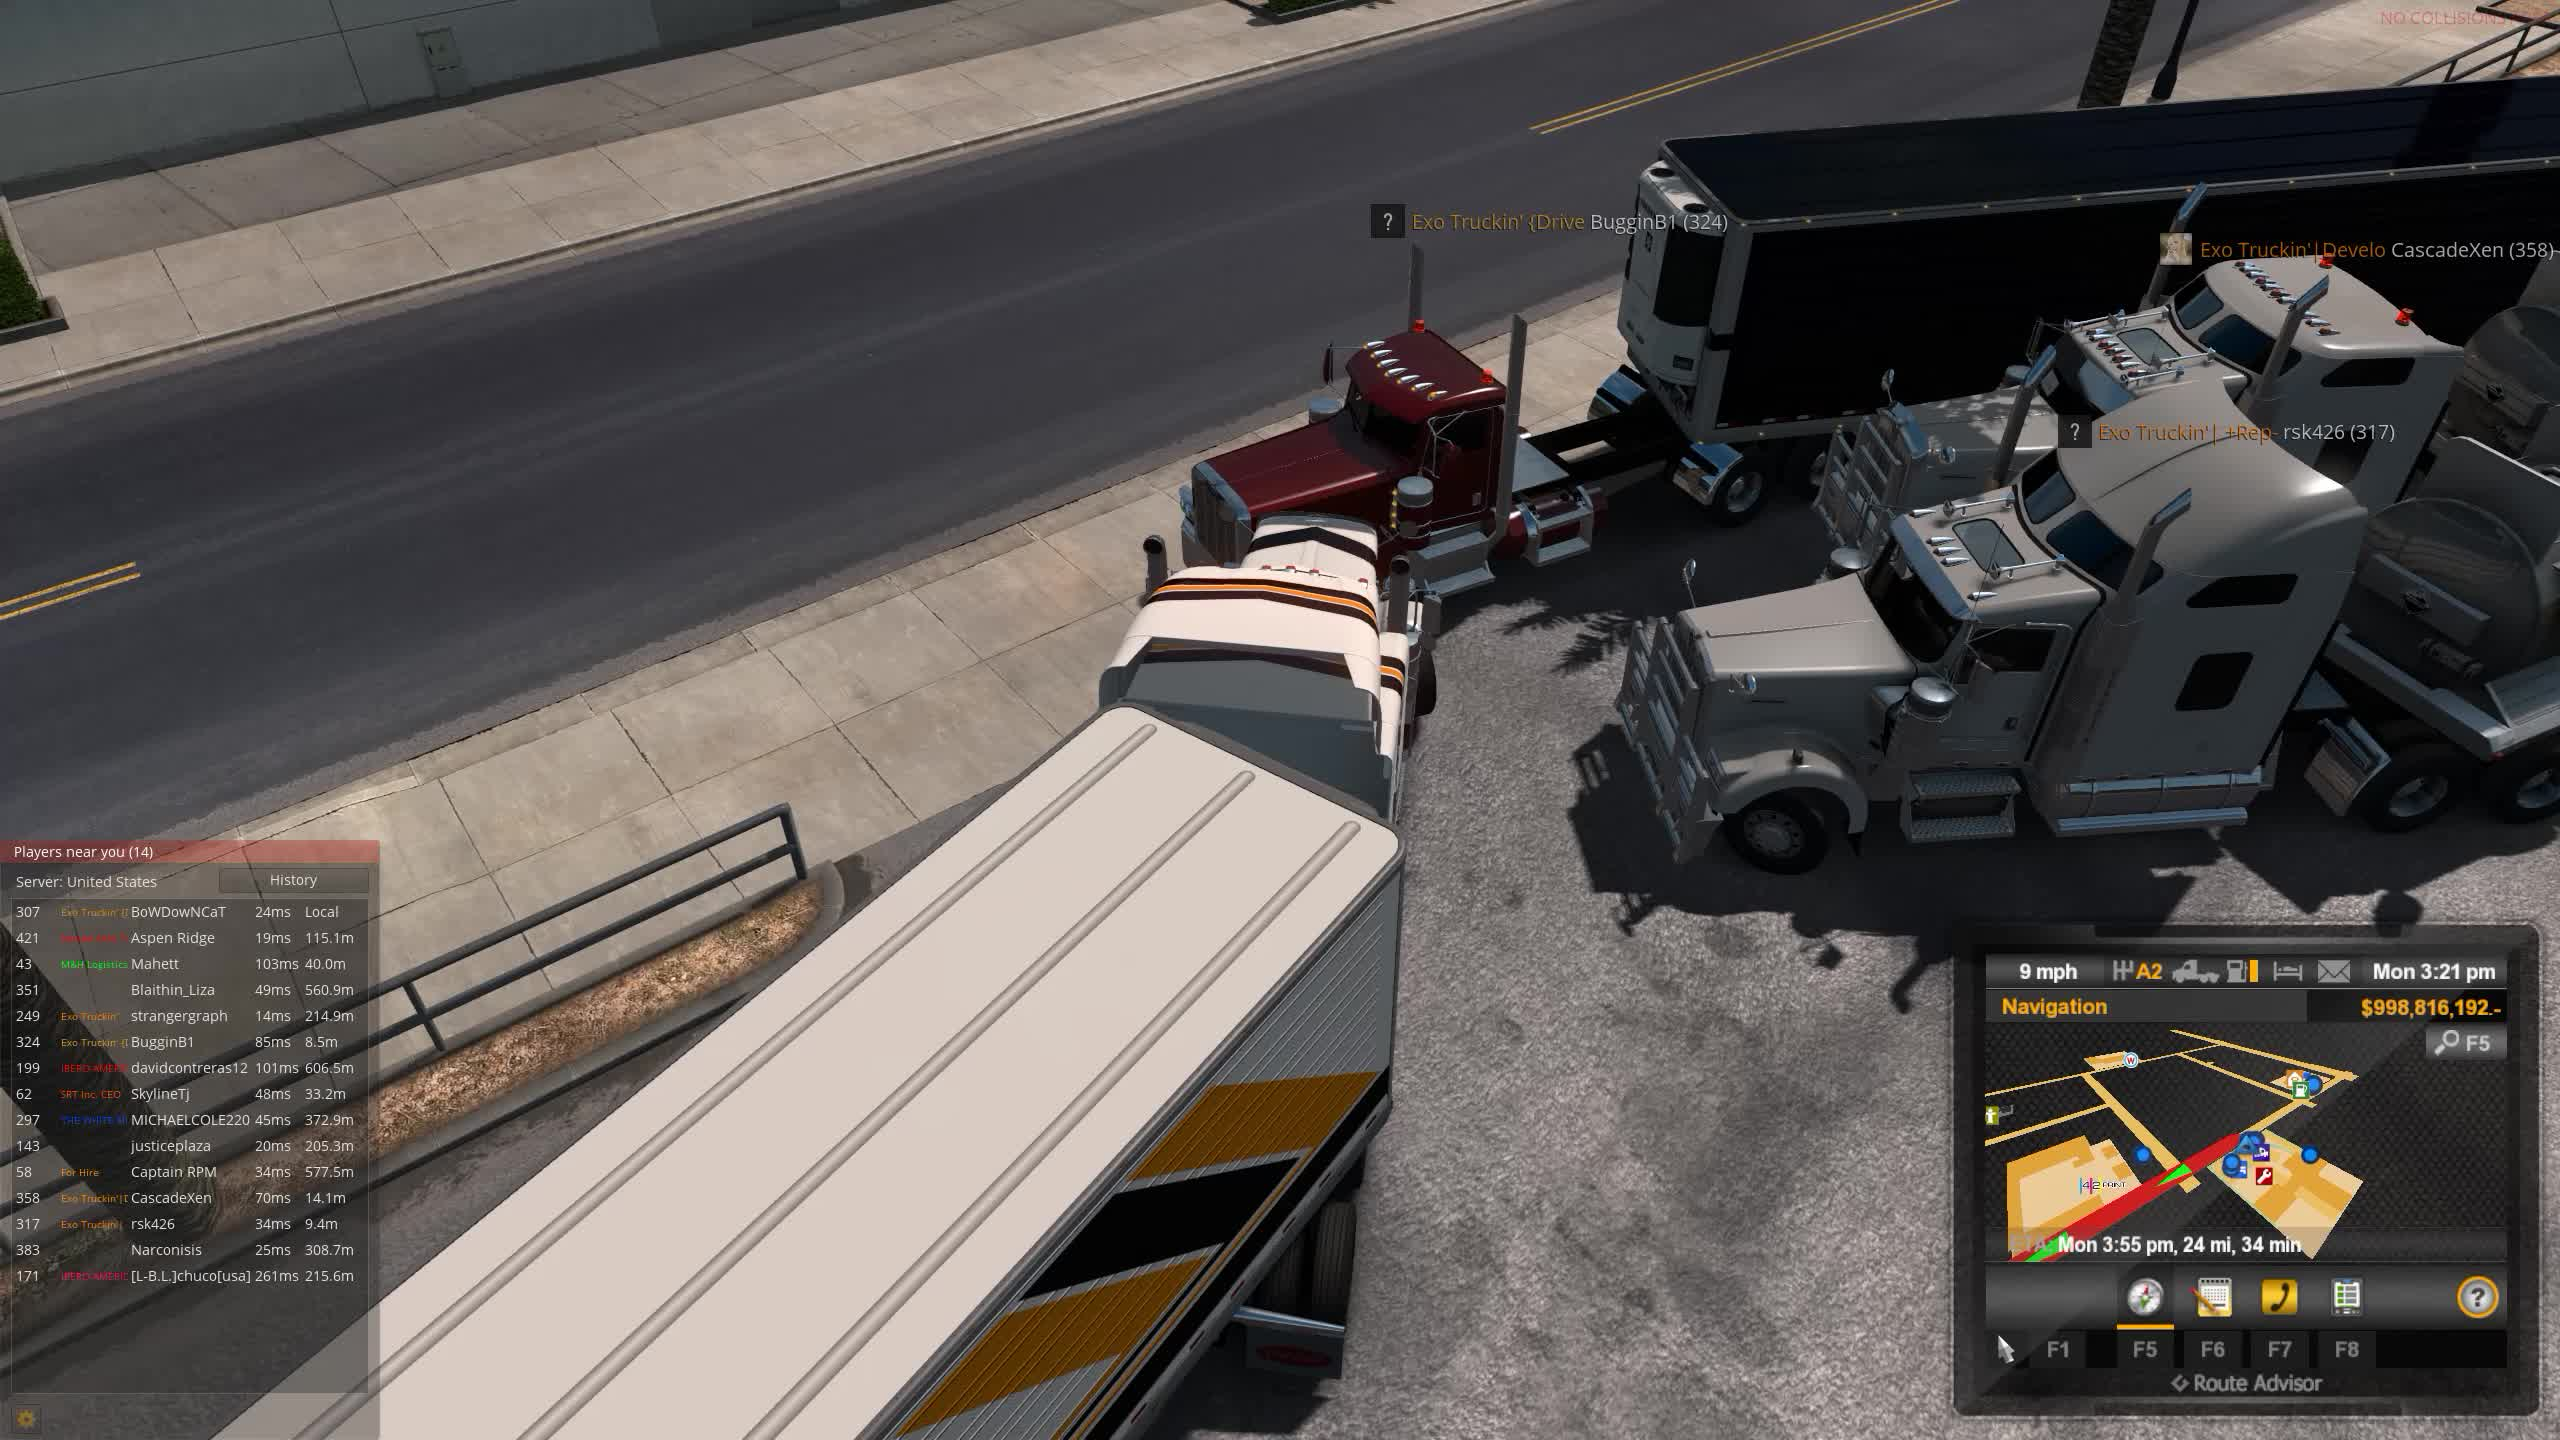 American Truck Simulator Gifs Search | Search & Share on Homdor